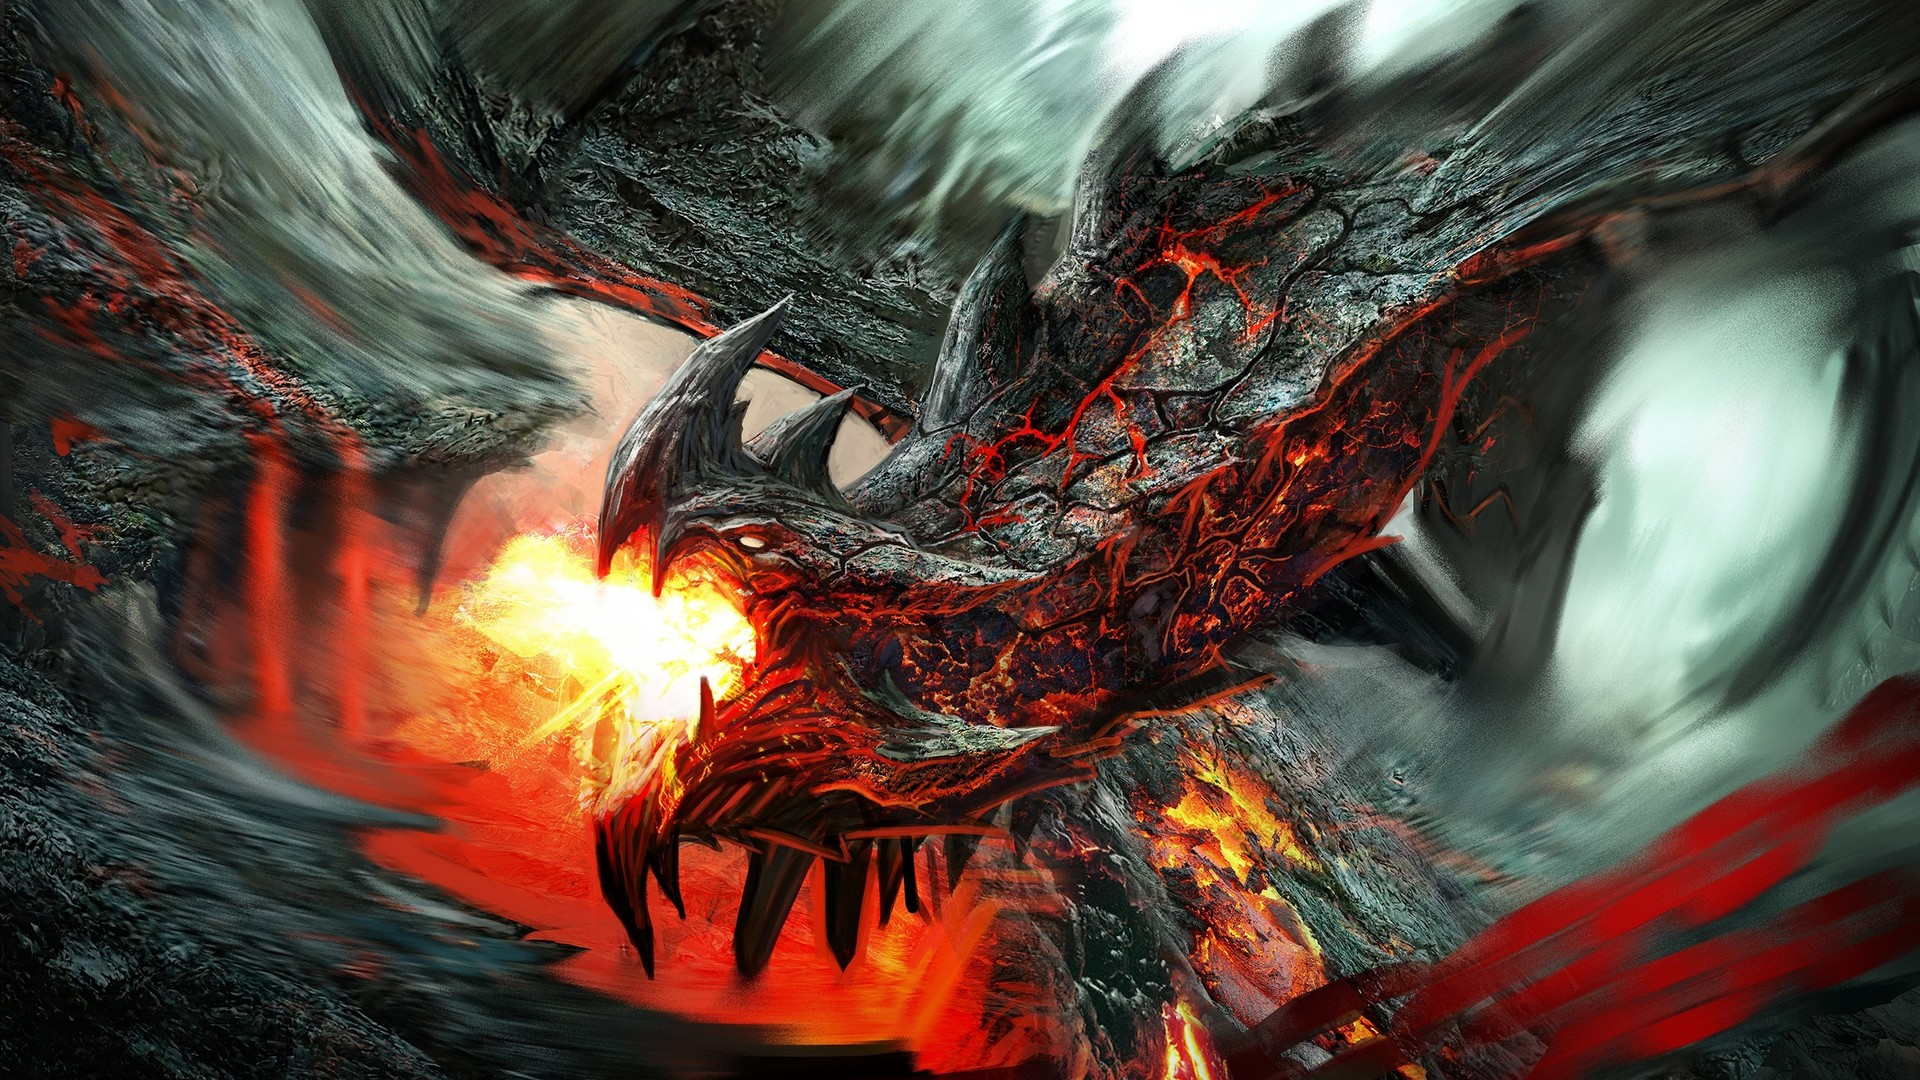 dragon fans out there I found these amazingly cool dragon wallpapers 1920x1080